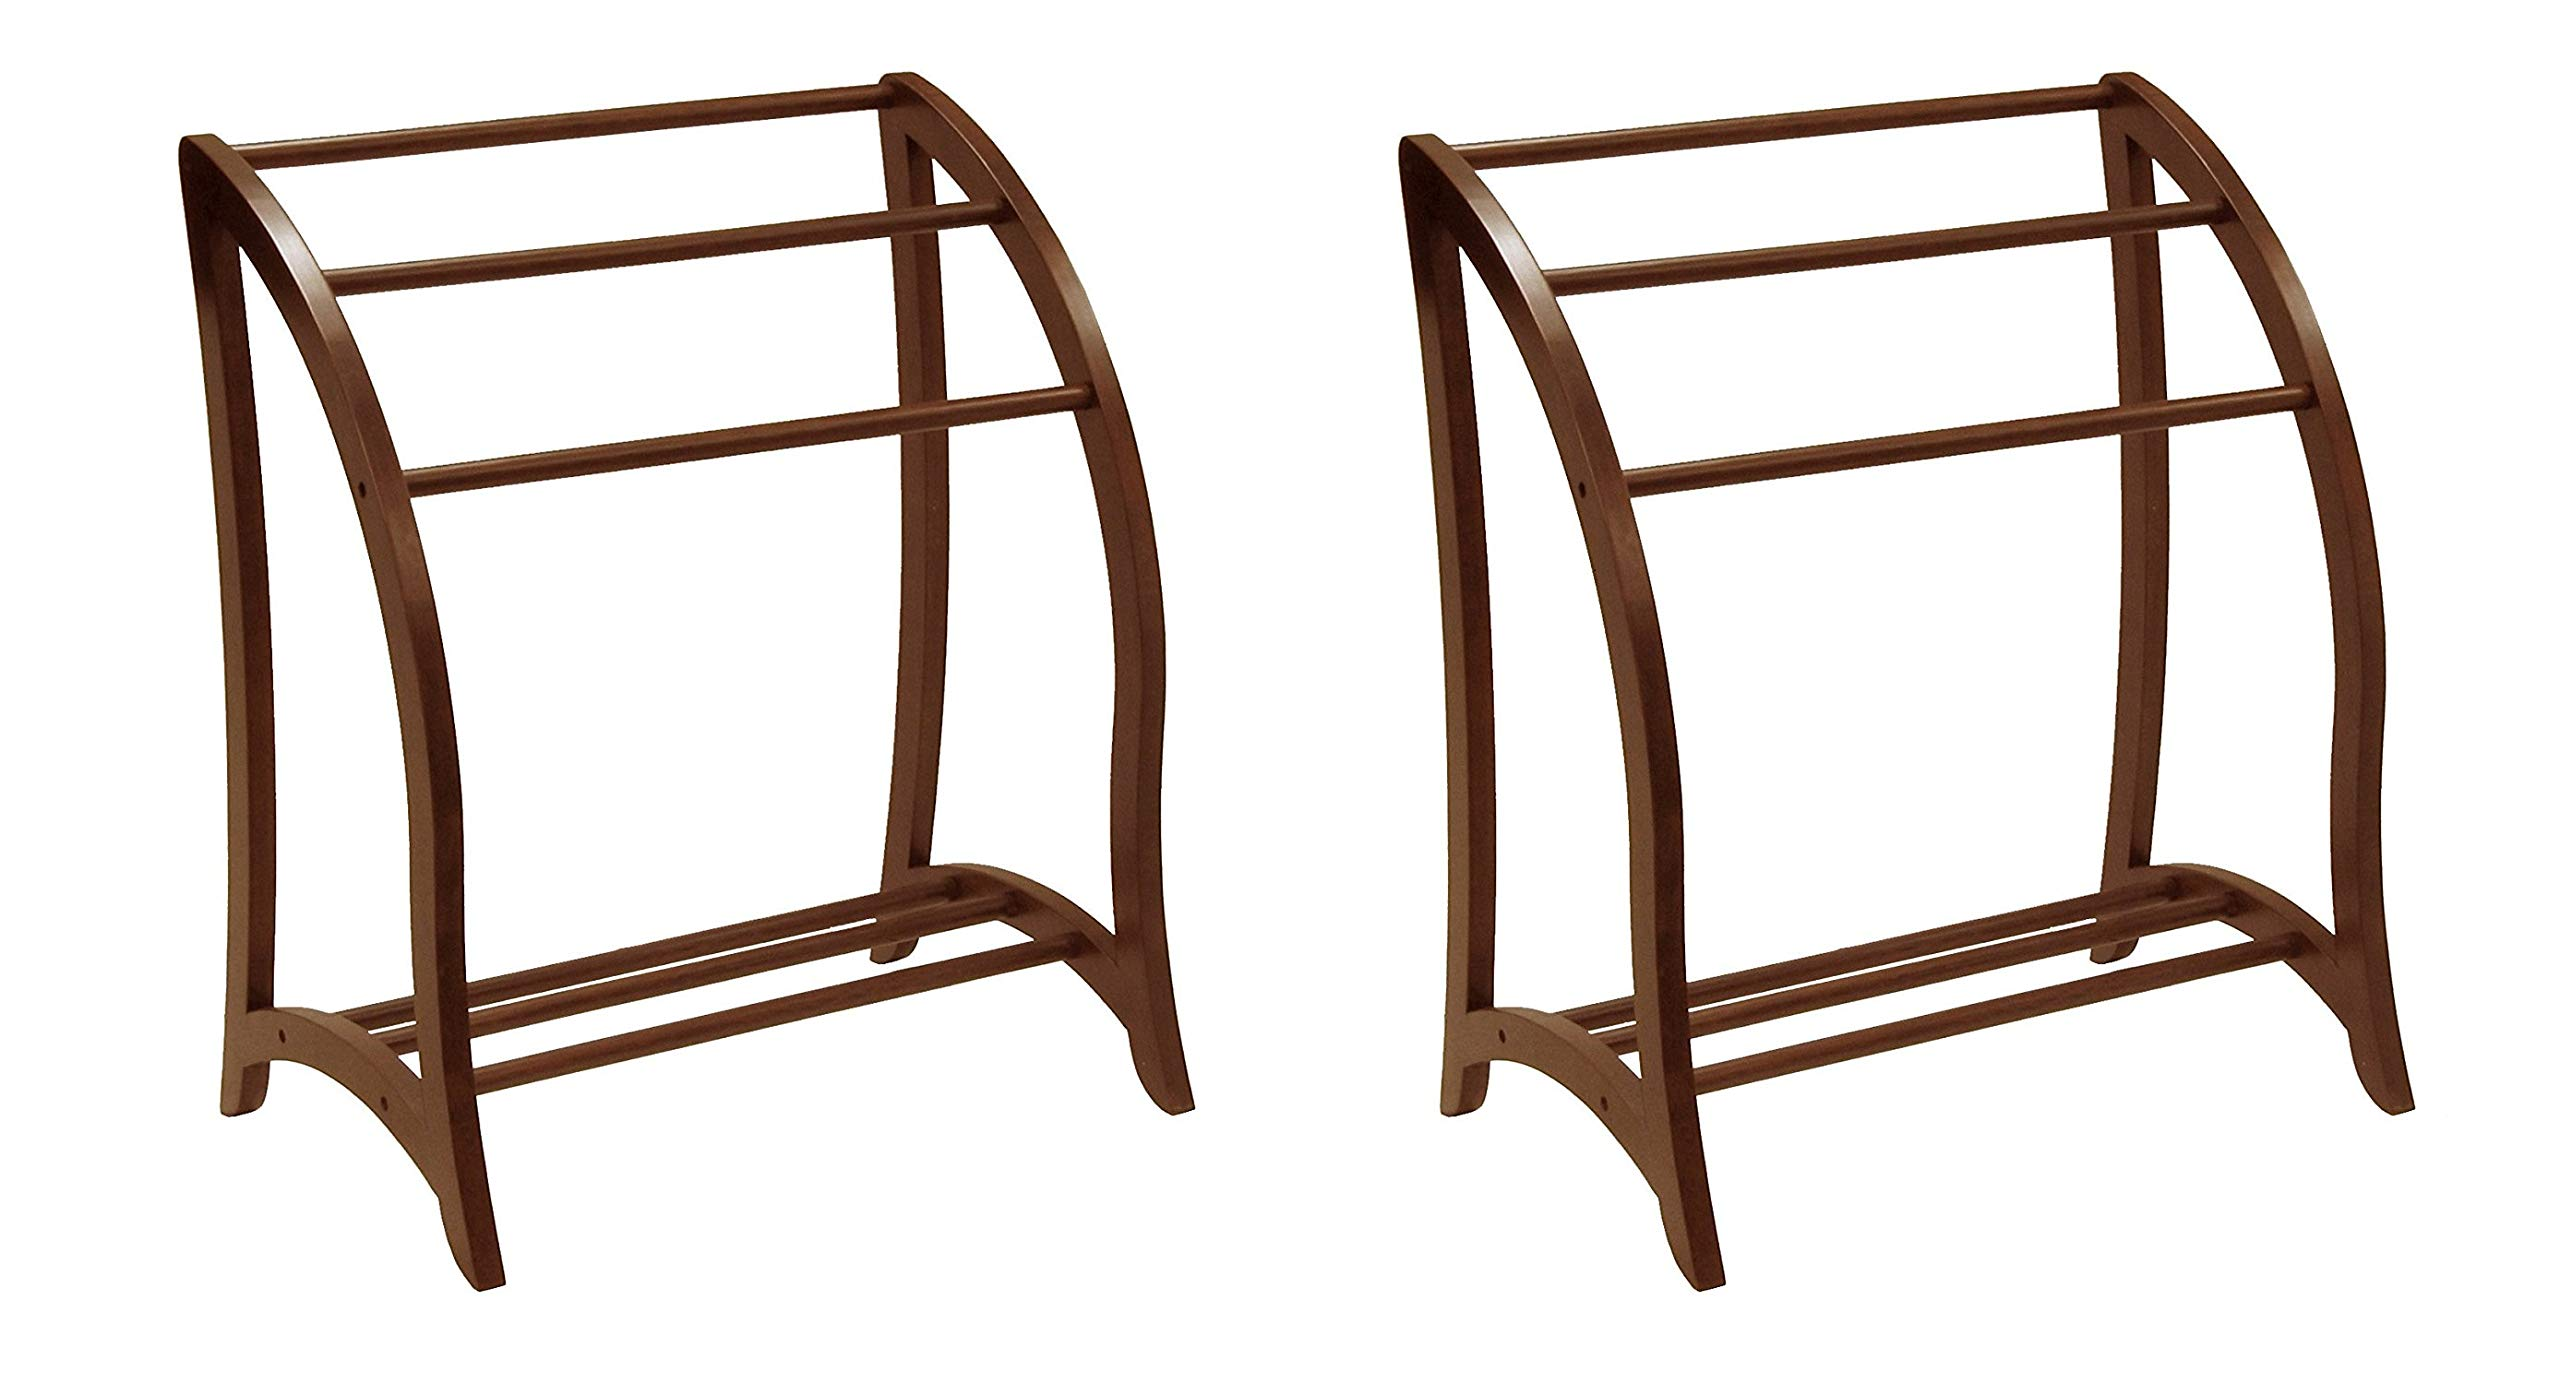 Winsome Wood Blanket Rack, Antique Walnut (Pack of 2) by Winsome Wood (Image #1)